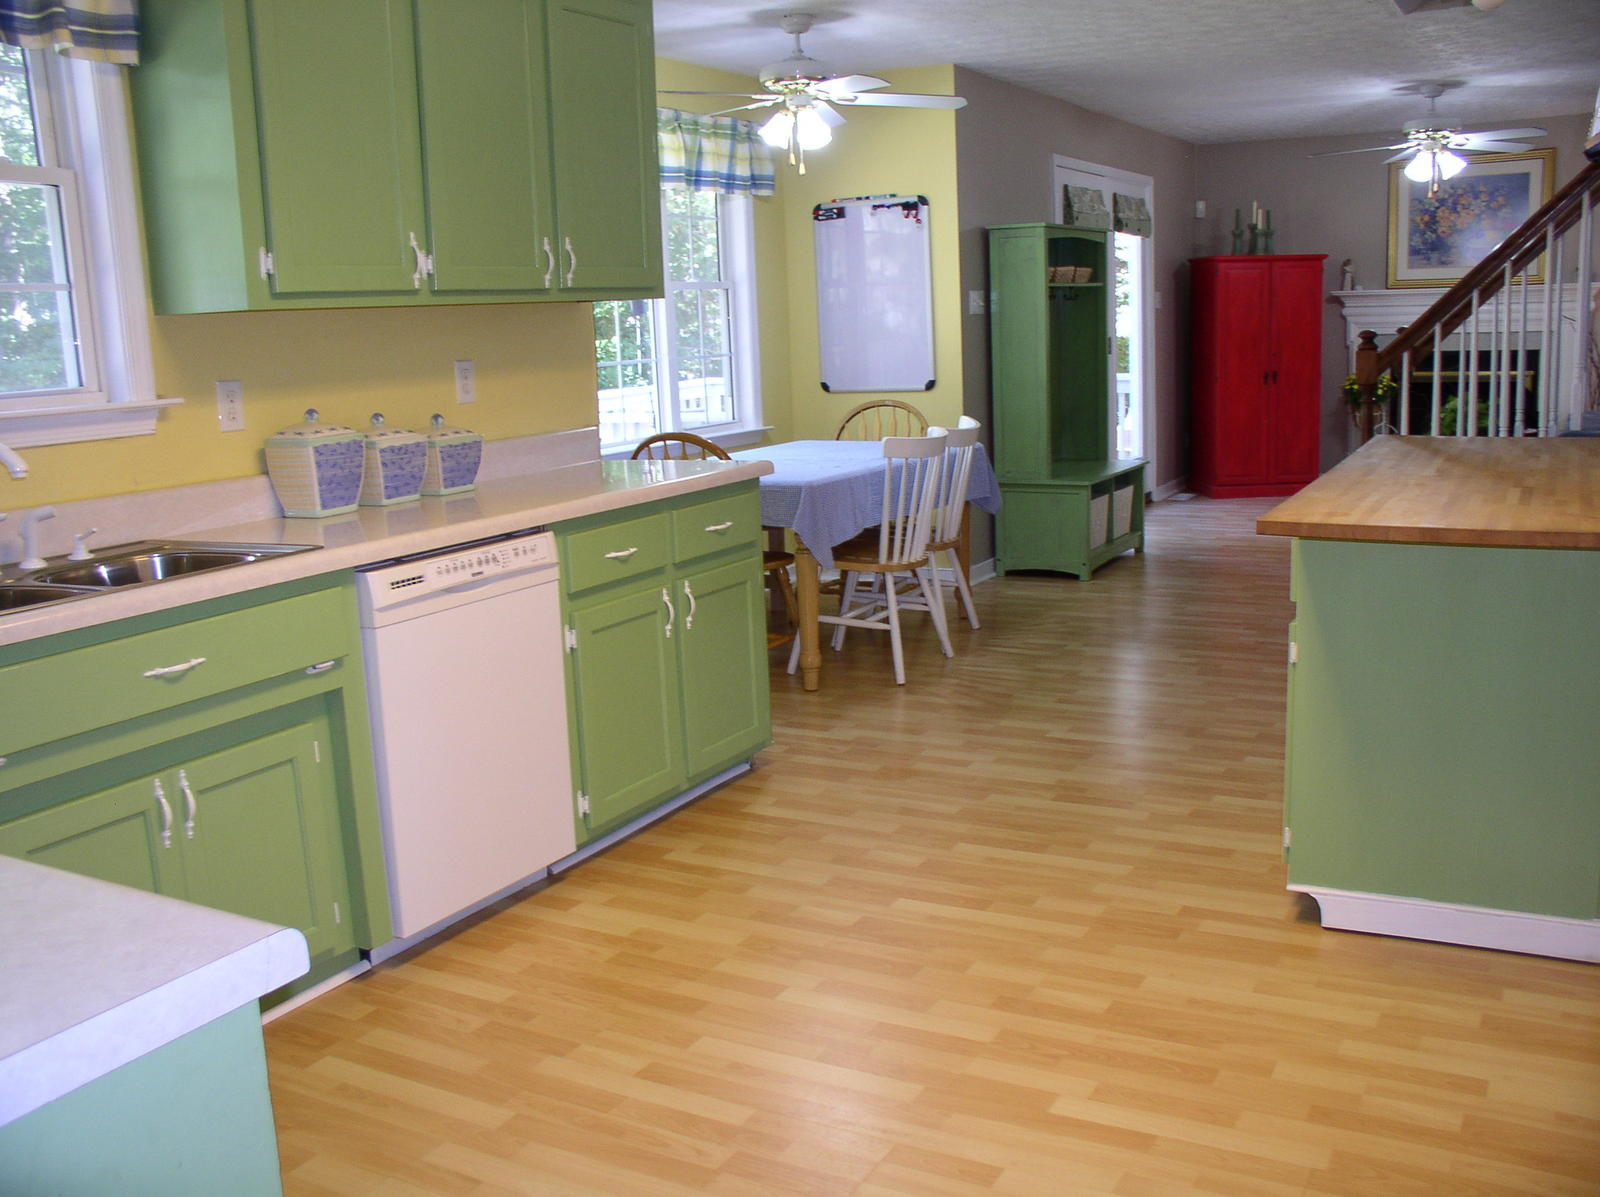 Painting your kitchen cabinets painting tips from the pros for Who paints kitchen cabinets